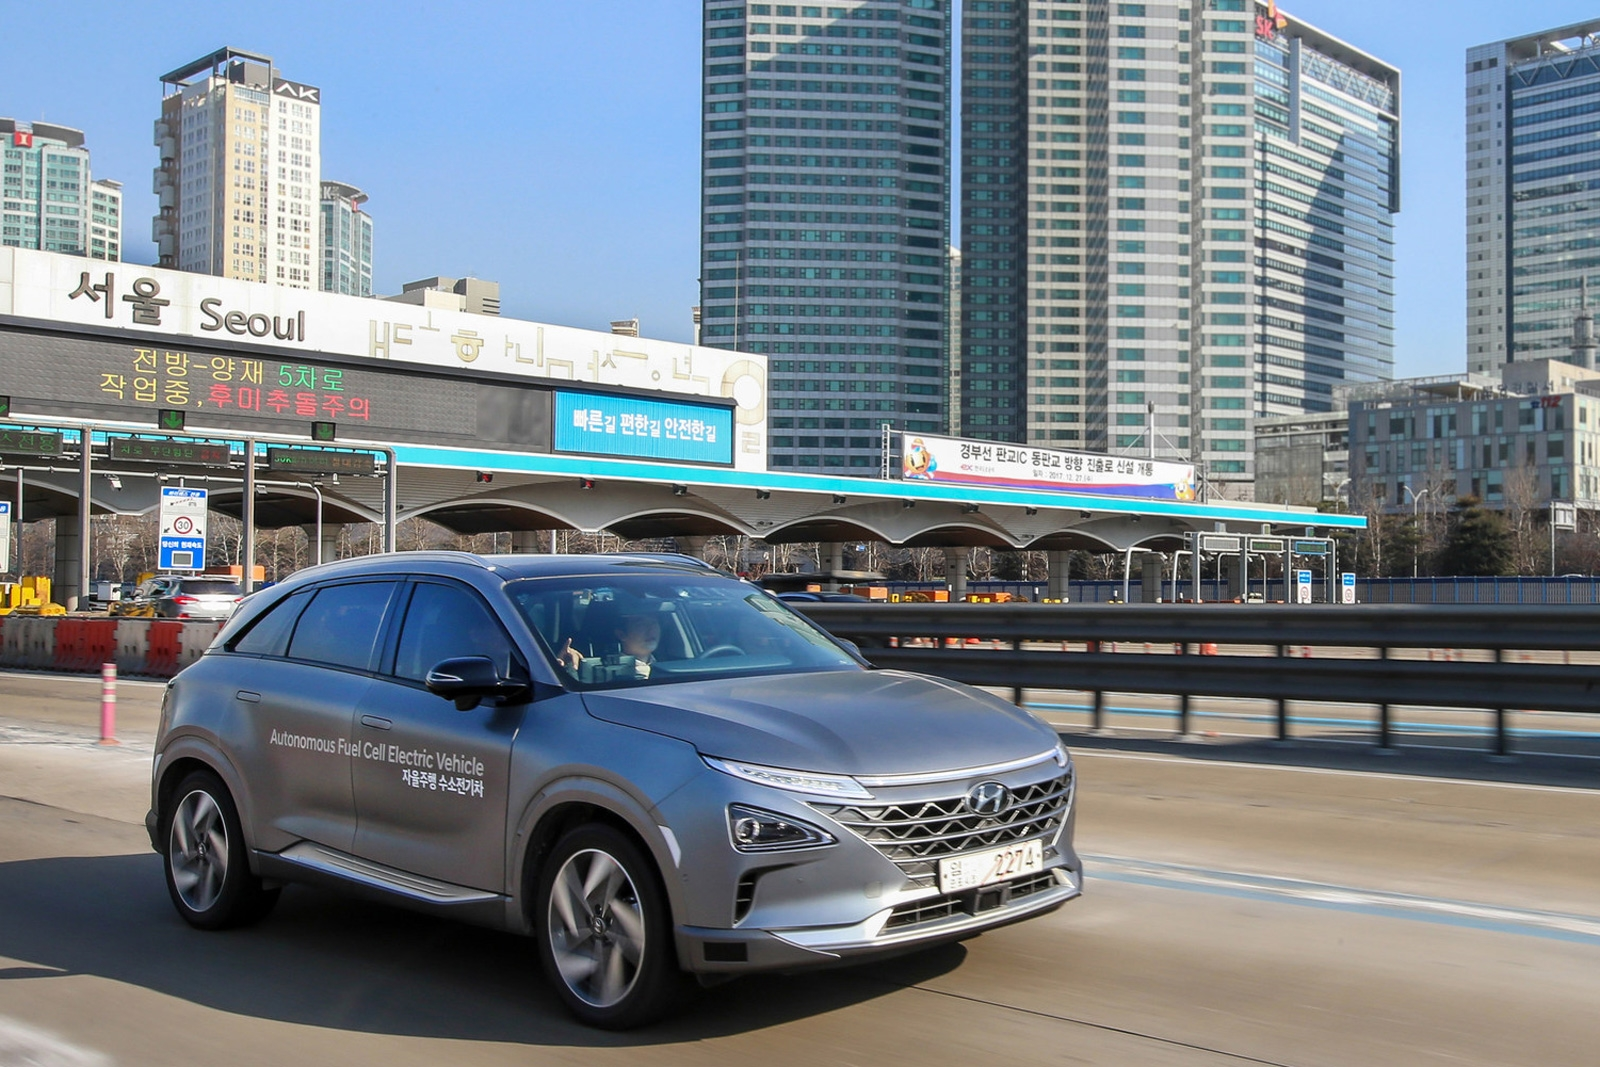 Hyundai's self-driving fuel cell cars complete a record highway trip | DeviceDaily.com